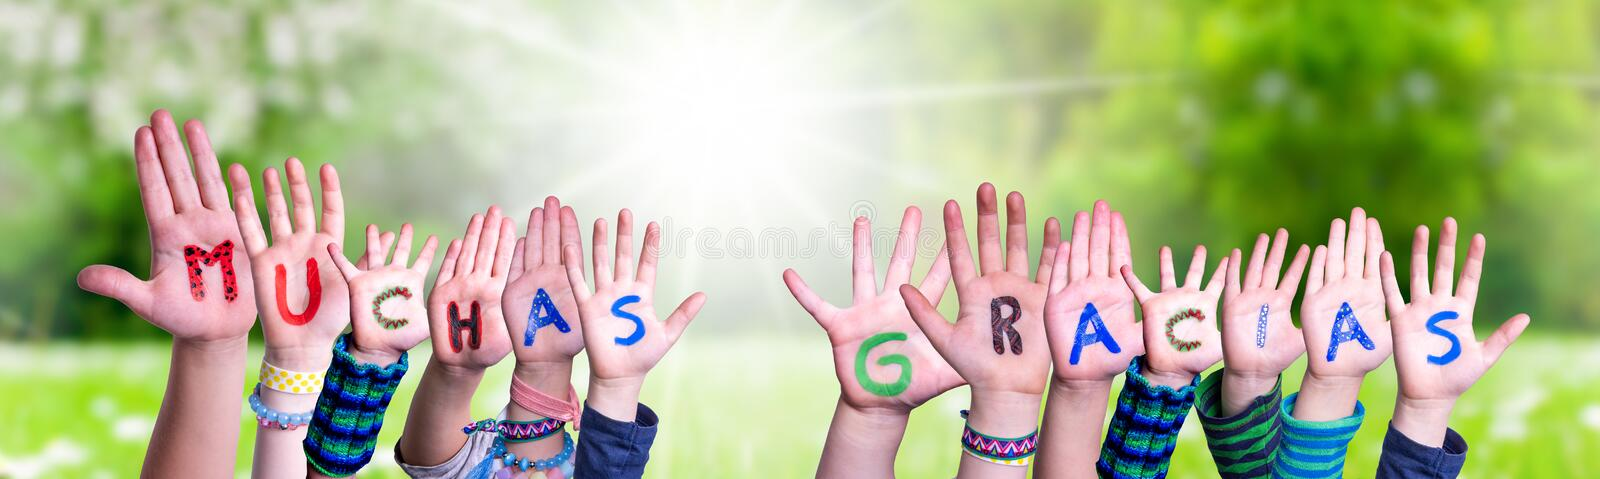 Children Hands Building Word Muchas Gracias Means Thank You, Grass Meadow. Children Hands Building Colorful Spanish Word Muchas Gracias Means Thank You. Sunny royalty free stock photography